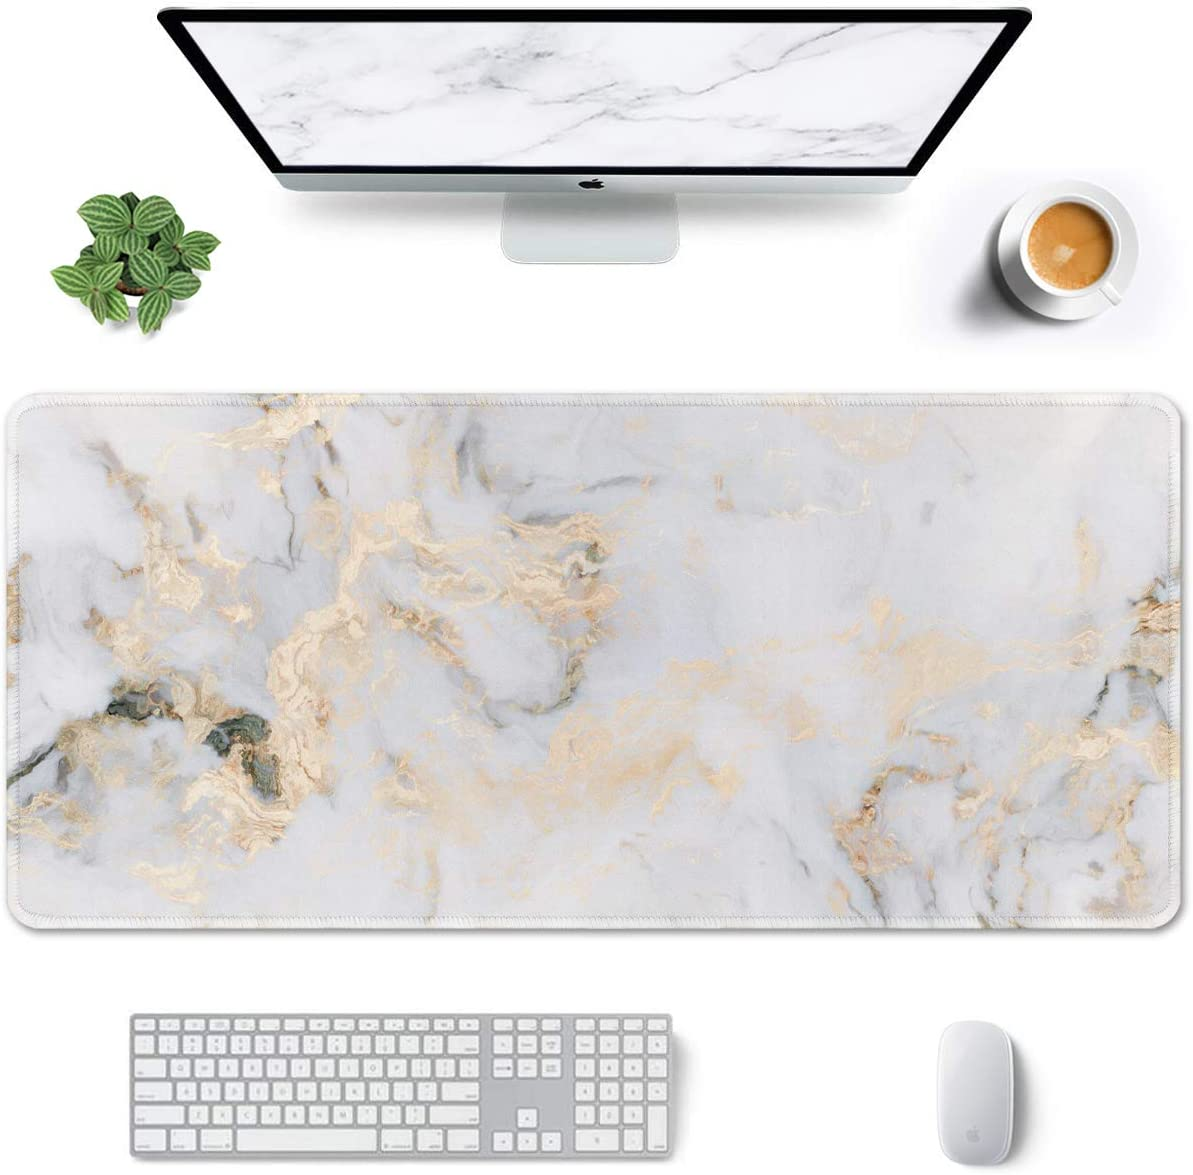 """Auhoahsil Large Mouse Pad, Full Desk XXL Extended Gaming Mouse Pad 35"""" X 15"""", Waterproof Desk Mat with Stitched Edge, Non-Slip Laptop Computer Keyboard Mousepad for Office & Home, White Marble Design"""